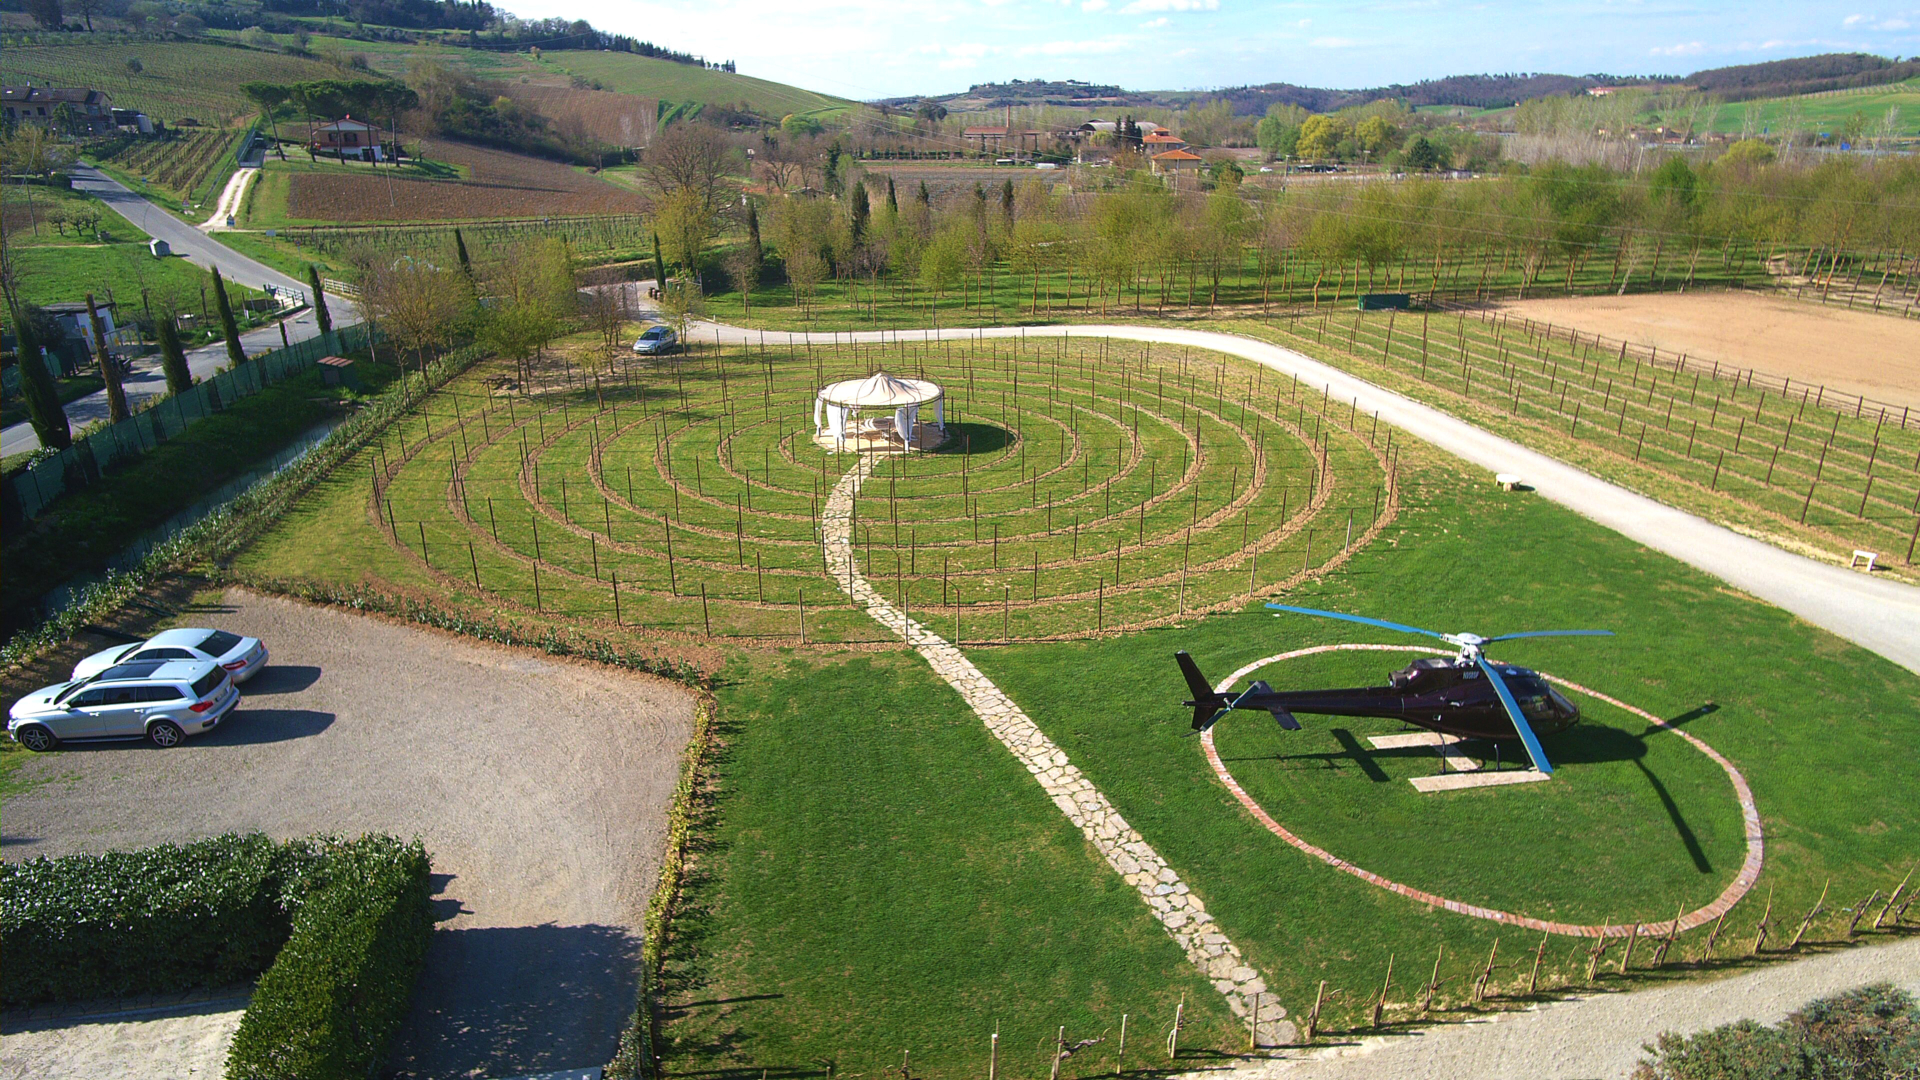 The winery in Tuscany, a return to nature